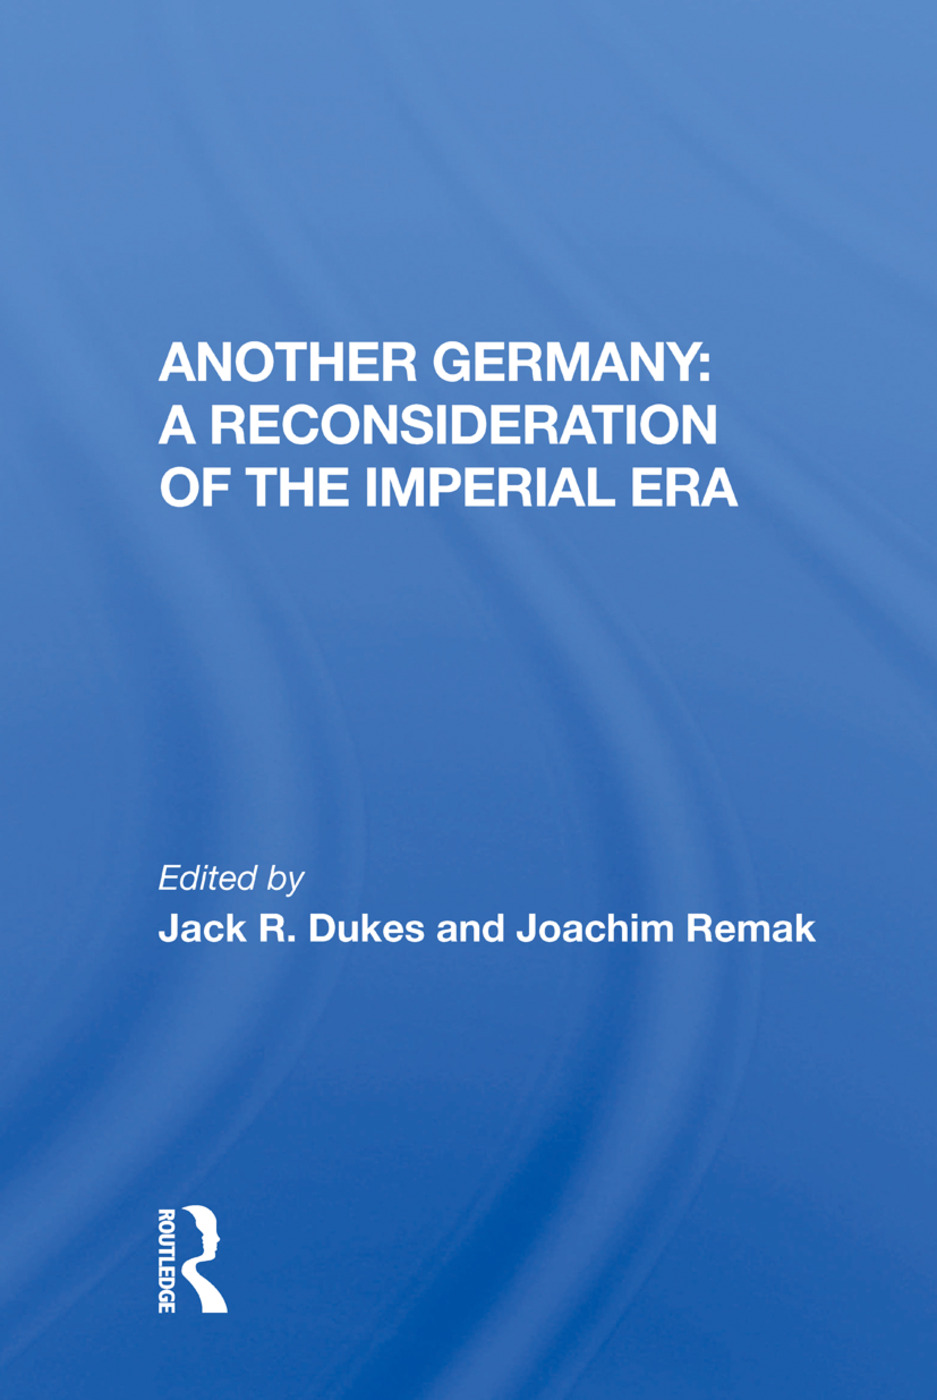 Another Germany: A Reconsideration Of The Imperial Era book cover